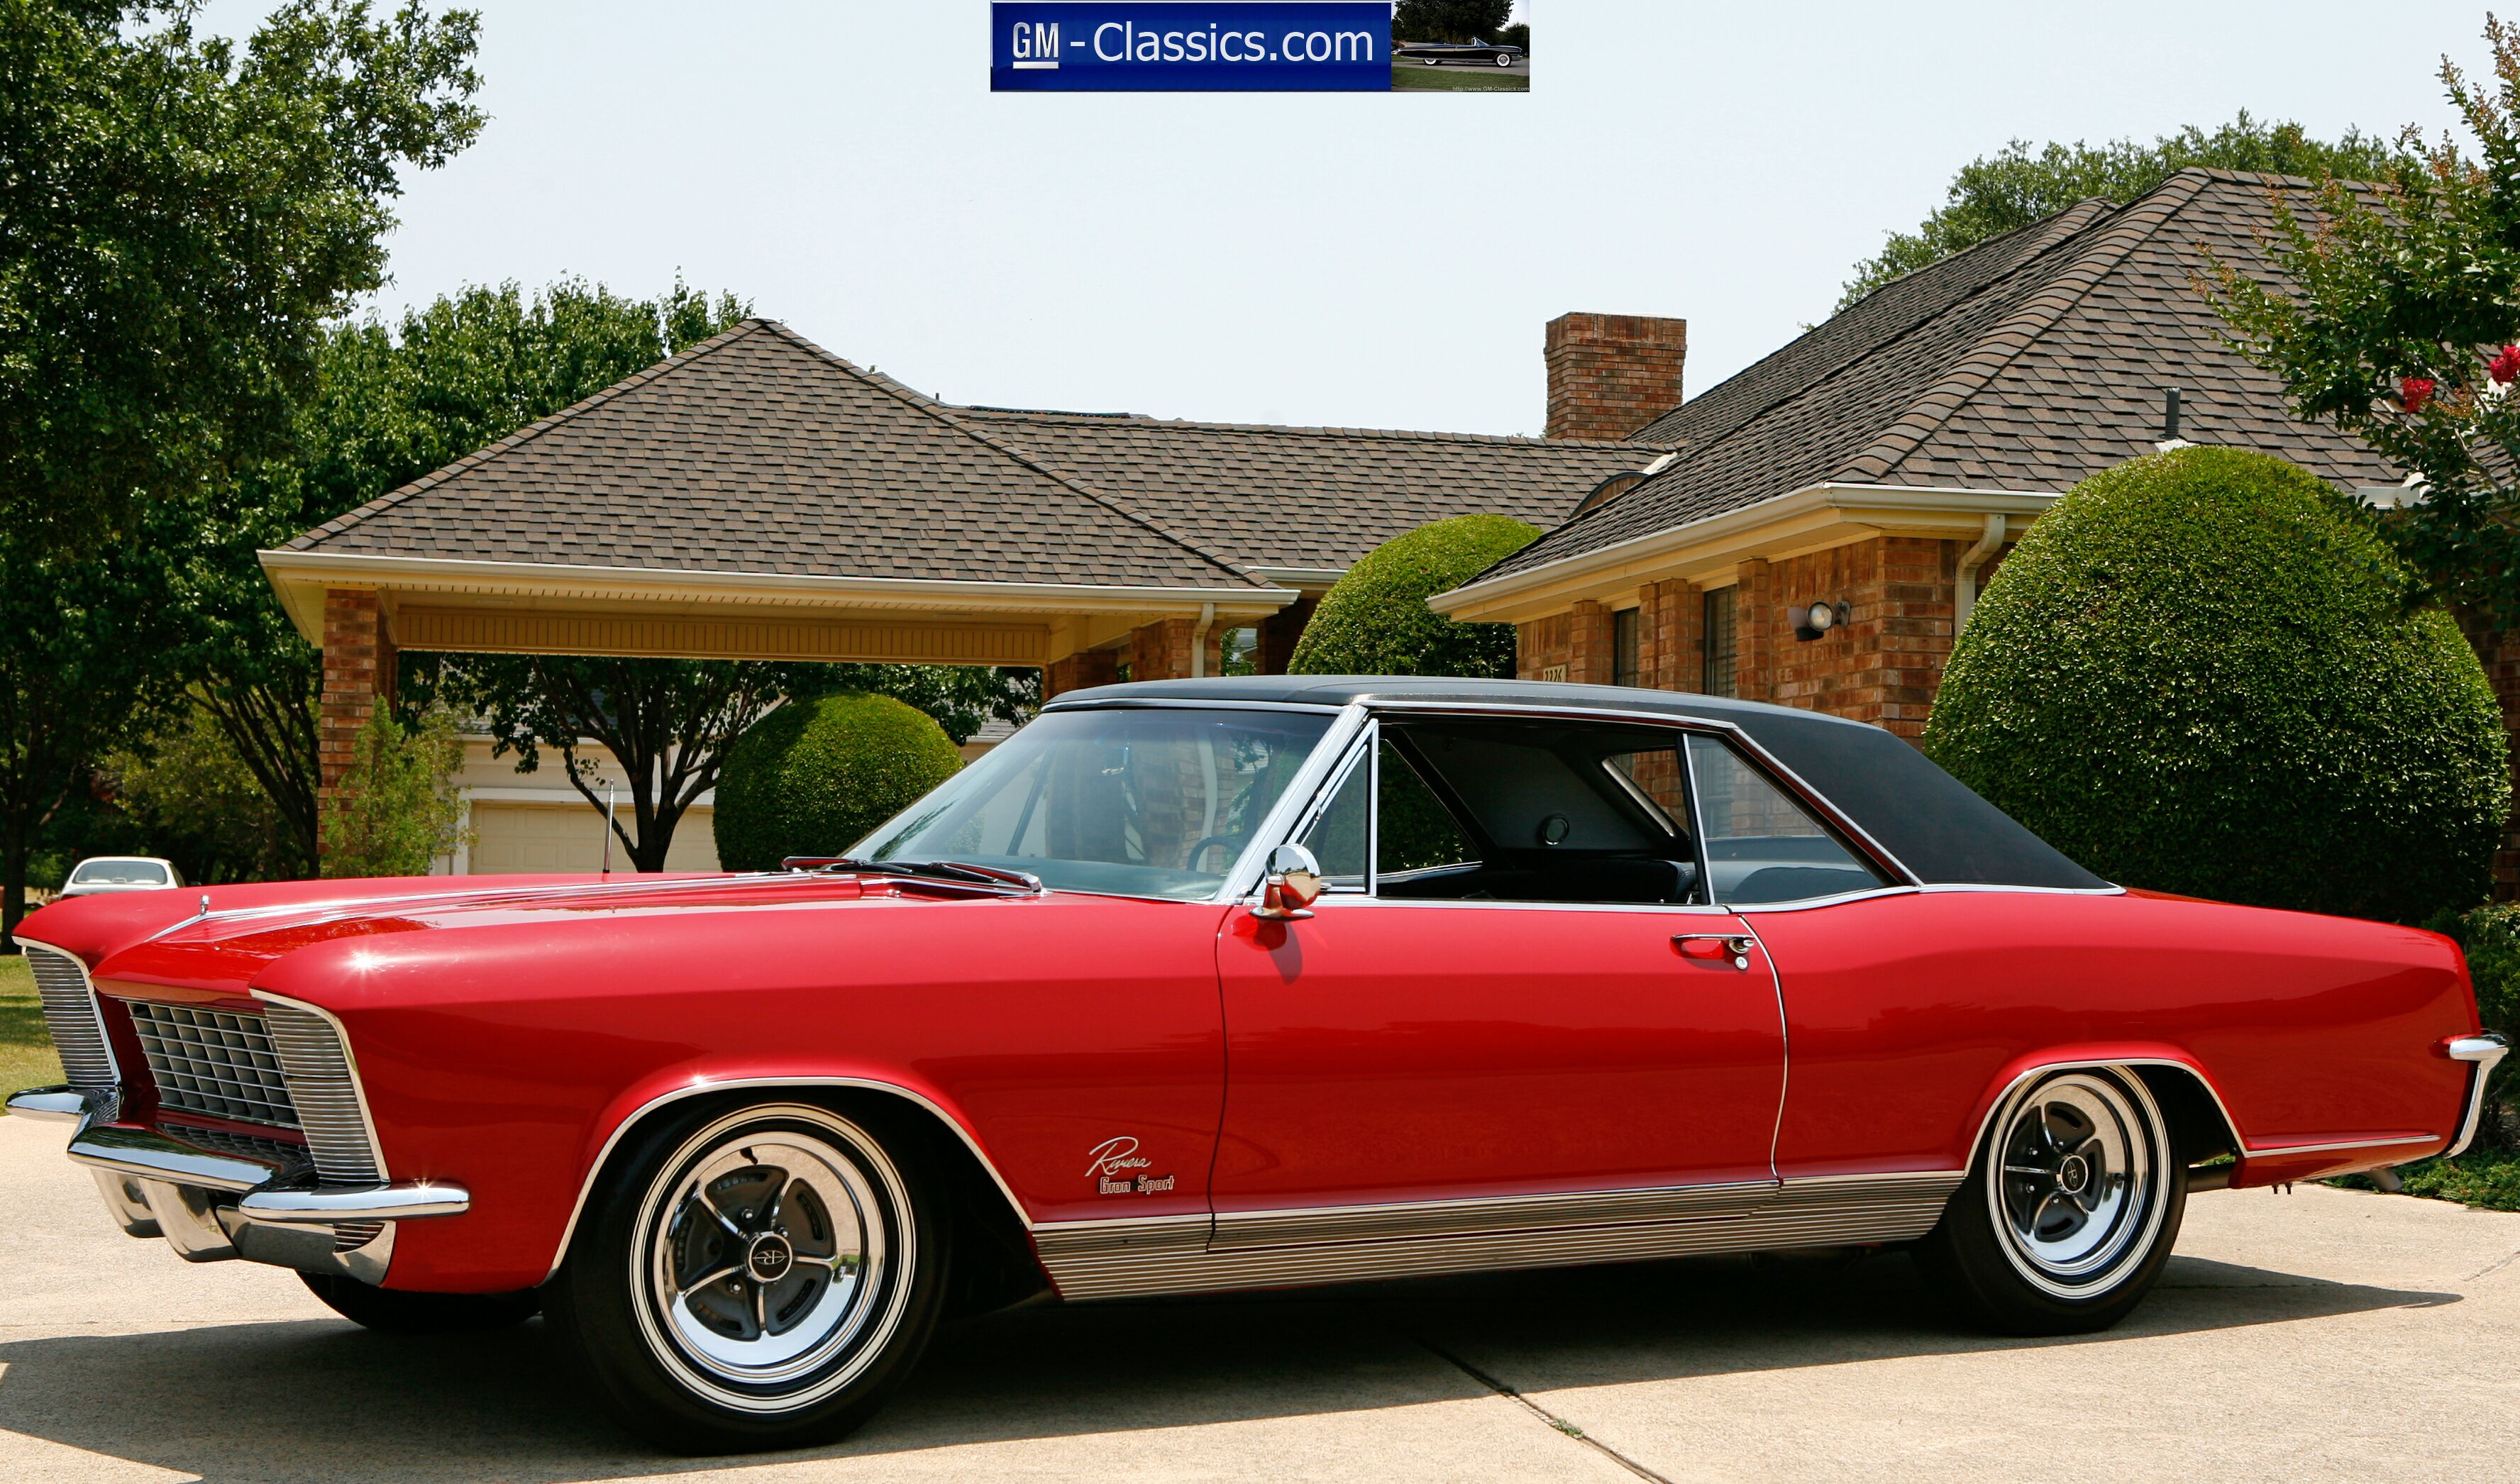 60s and 70s cars images galleries for The american classic